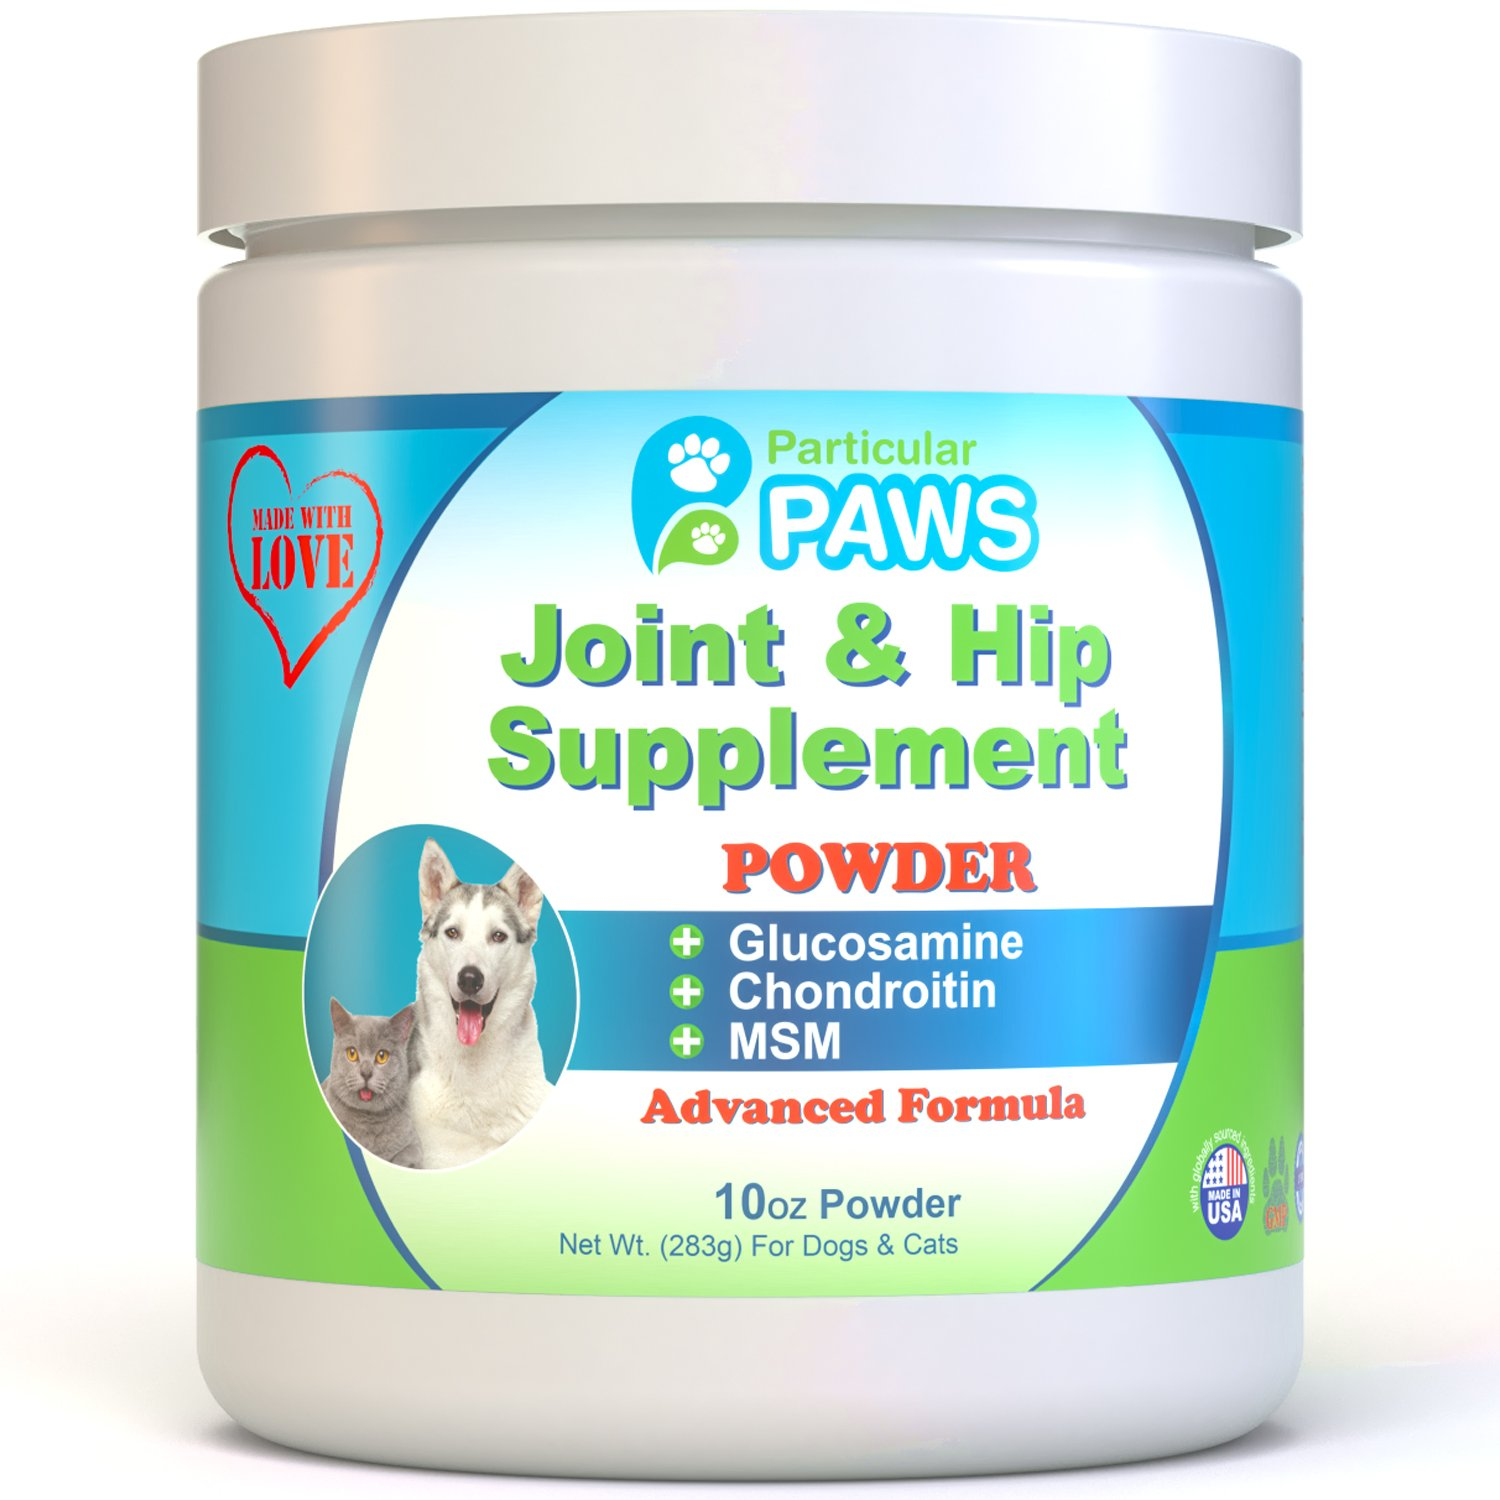 Glucosamine for Dogs and Cats - Powder - Joint & Hip Supplement with MSM, Chondroitin, Hyaluronic Acid and Vitamin C & E - 10 Ounce Powder